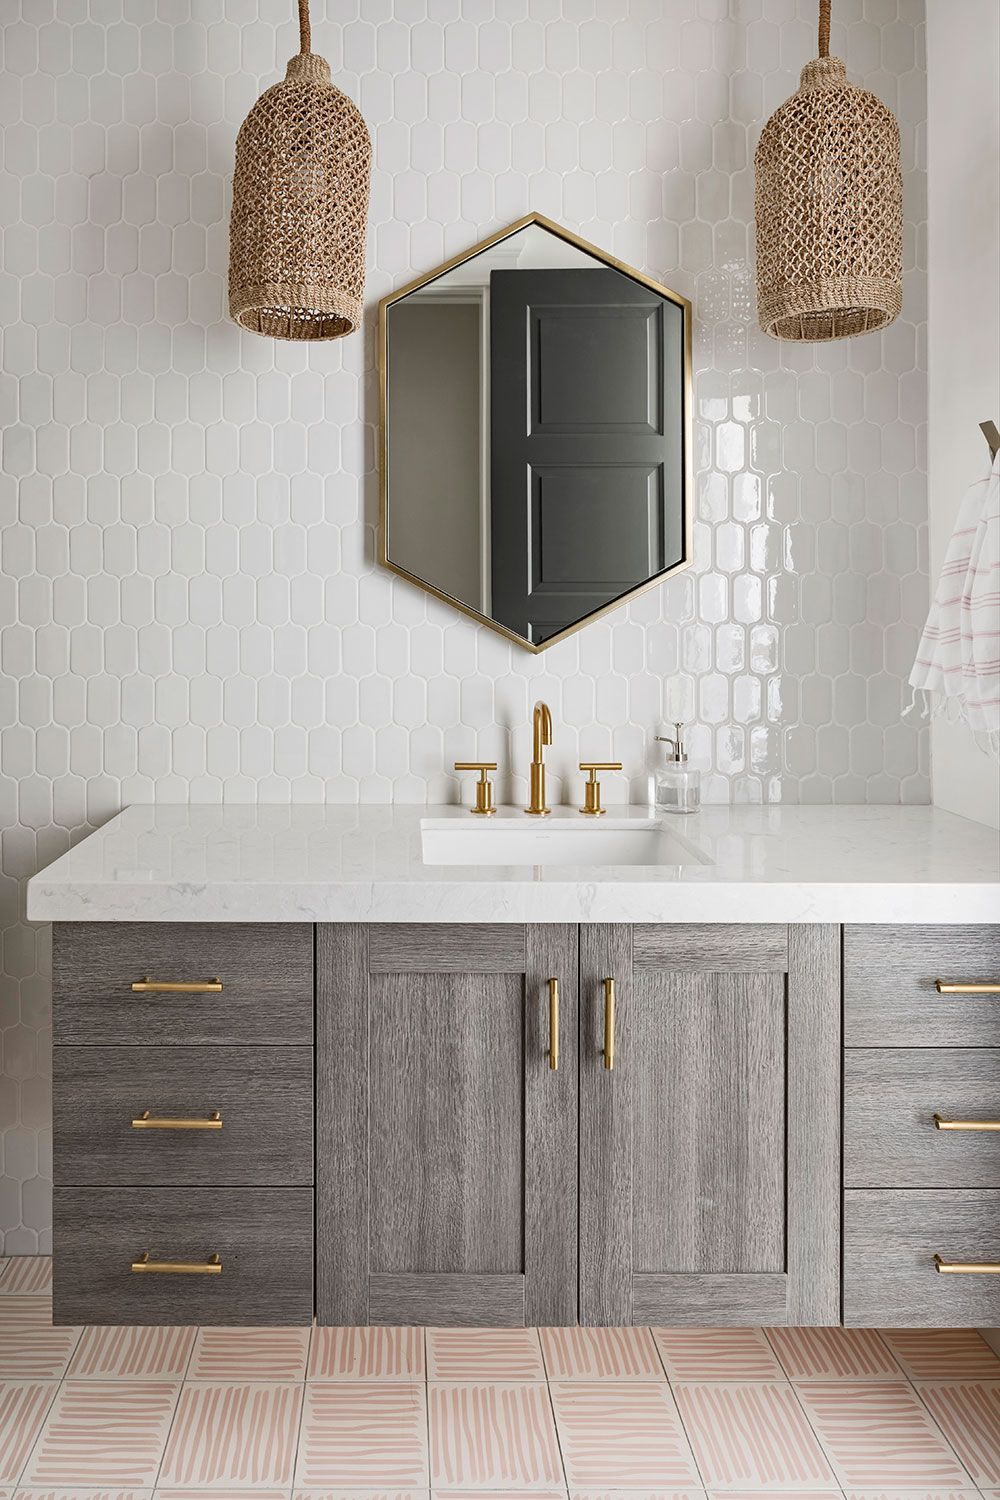 Geometric Shapes Patterns Textures And Gold Accents Shown In Our Heigh End Full Access Gorgeous Bathroom Designs Amazing Bathrooms Best Bathroom Vanities [ 1500 x 1000 Pixel ]